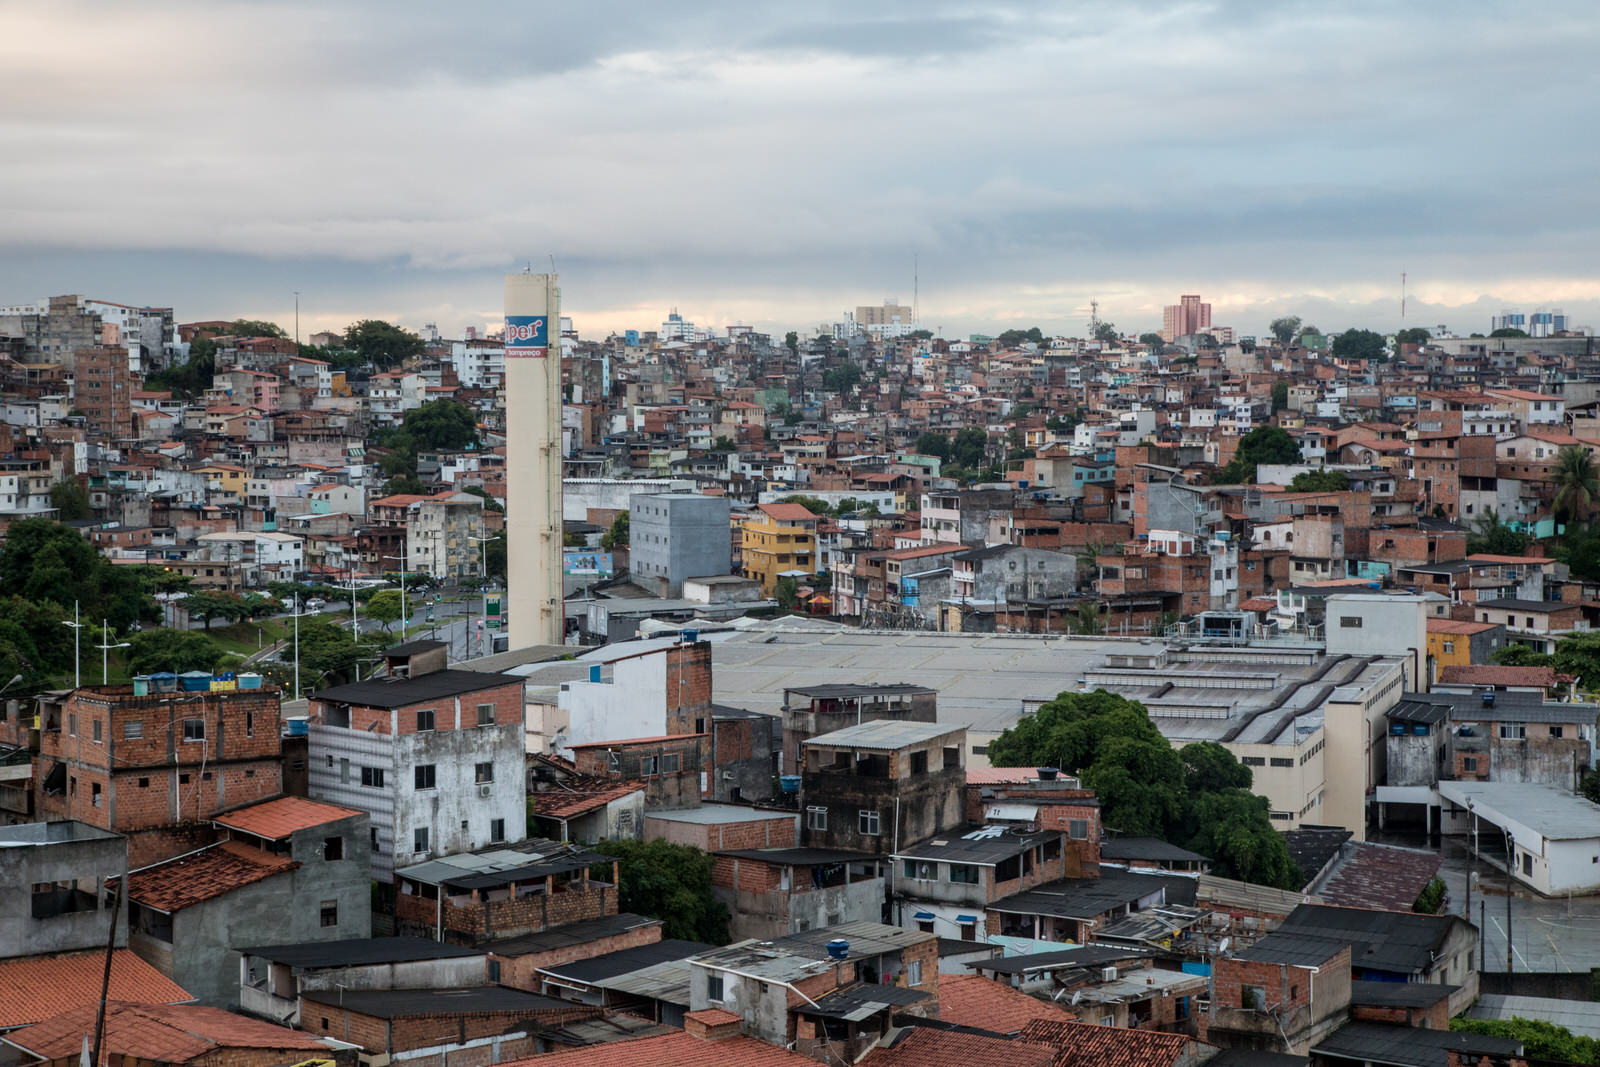 Salvador de Bahia is the 4th largest city in Brazil, and is situated in the Northeast of the country.